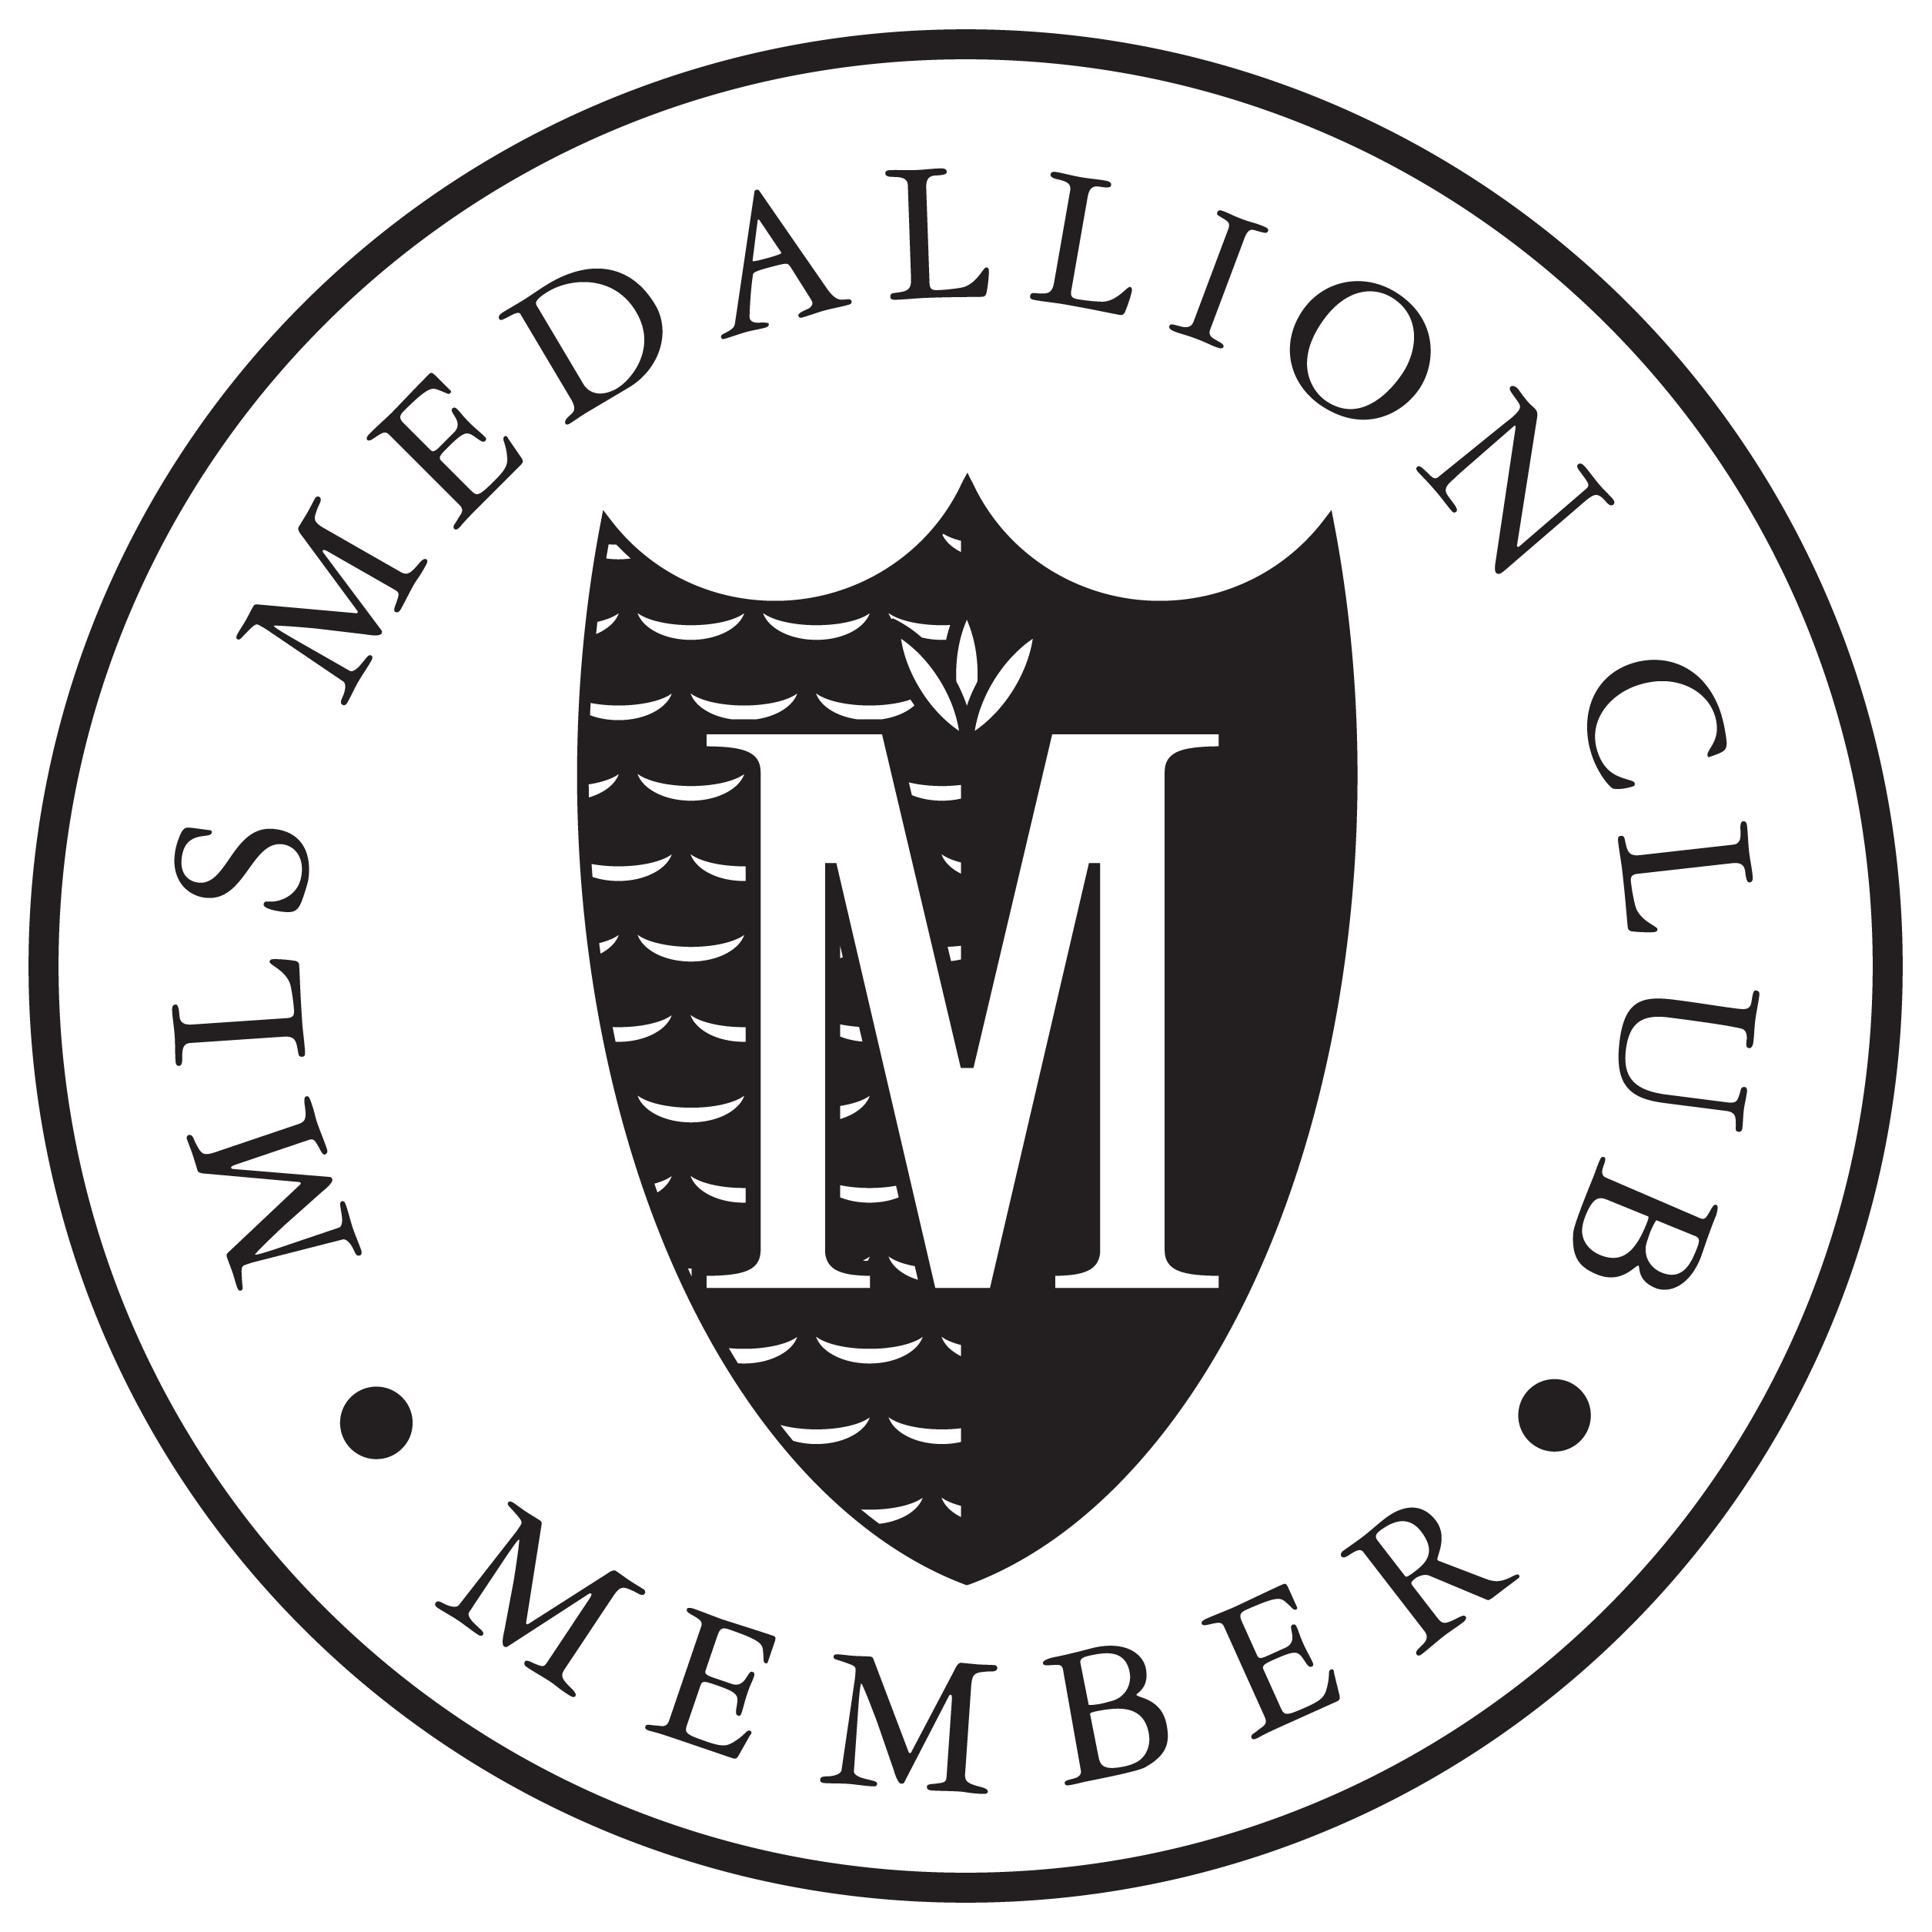 Medallion Club Award - Top 10% in 2017 & 2018 of All Realtors based on MLS Sales at the Real Estate Board Greater